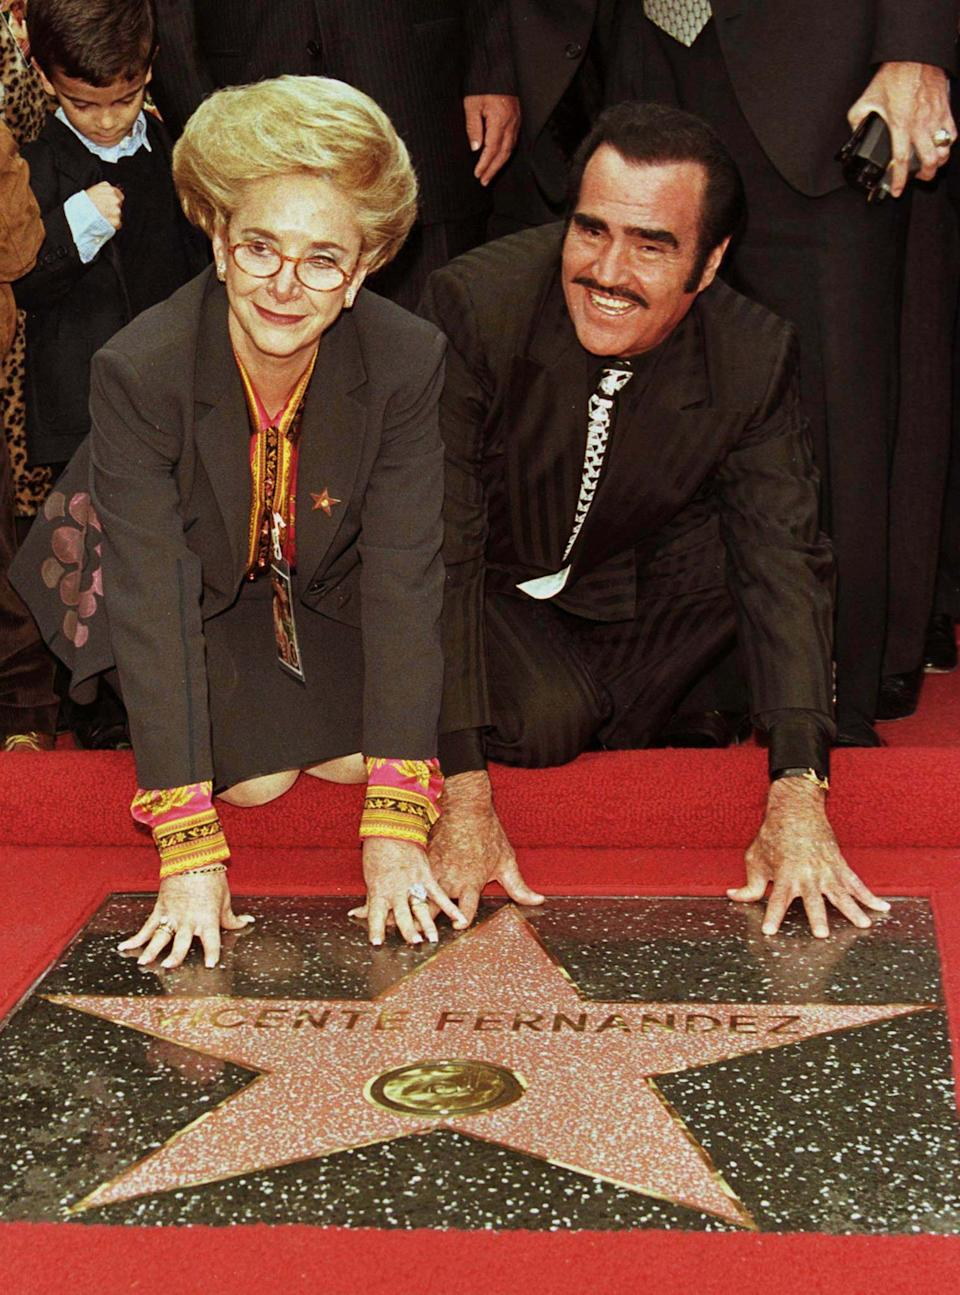 Mexican mariachi singer Vicente Fernandez poses with his wife,Cuquita, on his star on the Hollywood Walk of Fame during ceremonies to honor him November 11. Fernandez is internationally recognized as the king of Mexican Ranchera music and has sold over 60 million records worldwide.  RMP/SV/AA